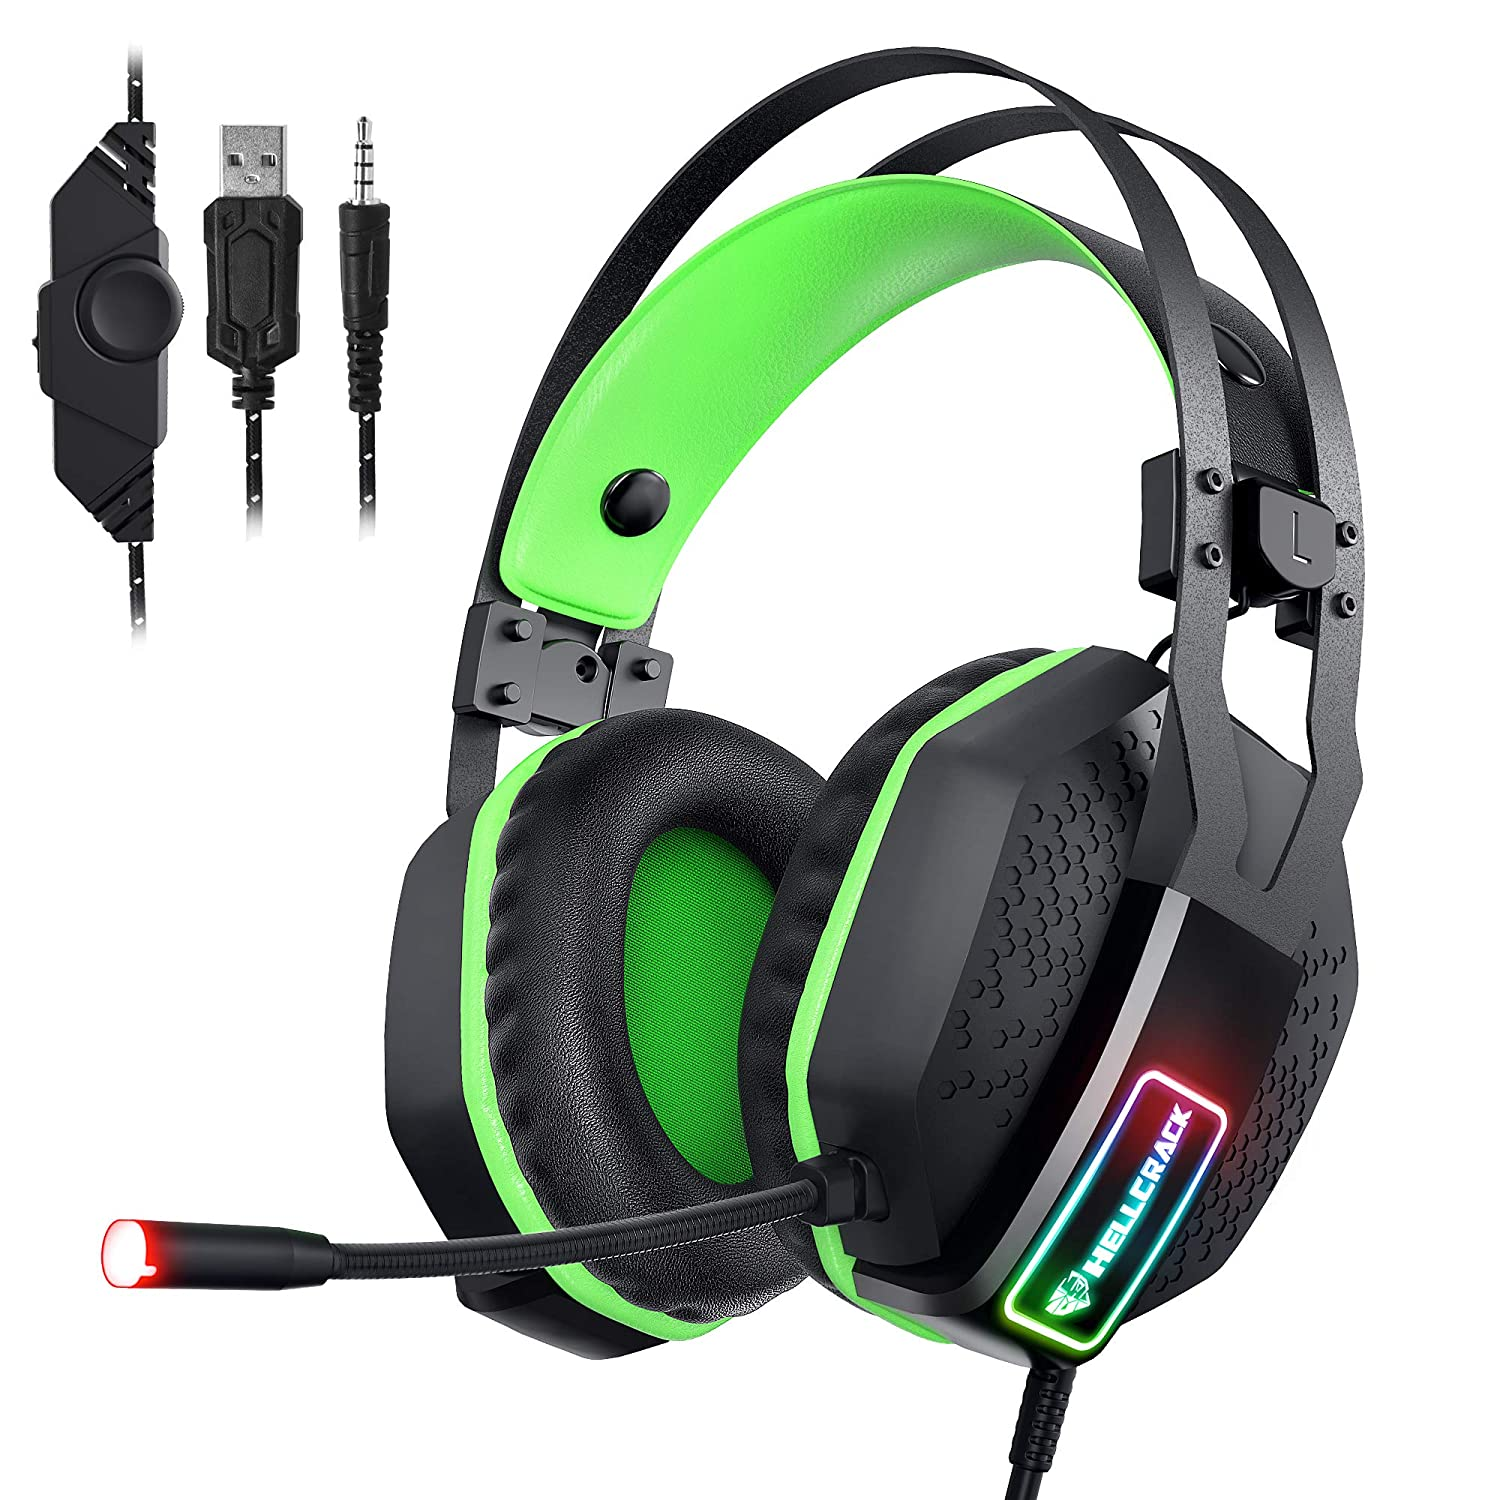 Mifanstech V-10 Gaming Headset for Xbox One Playstation 2 PS4 PC – 3.5mm Surround Sound, Noise Reduction Game Headphone with Microphone and Volume Control for Laptop, Tablet,Switch Games Green